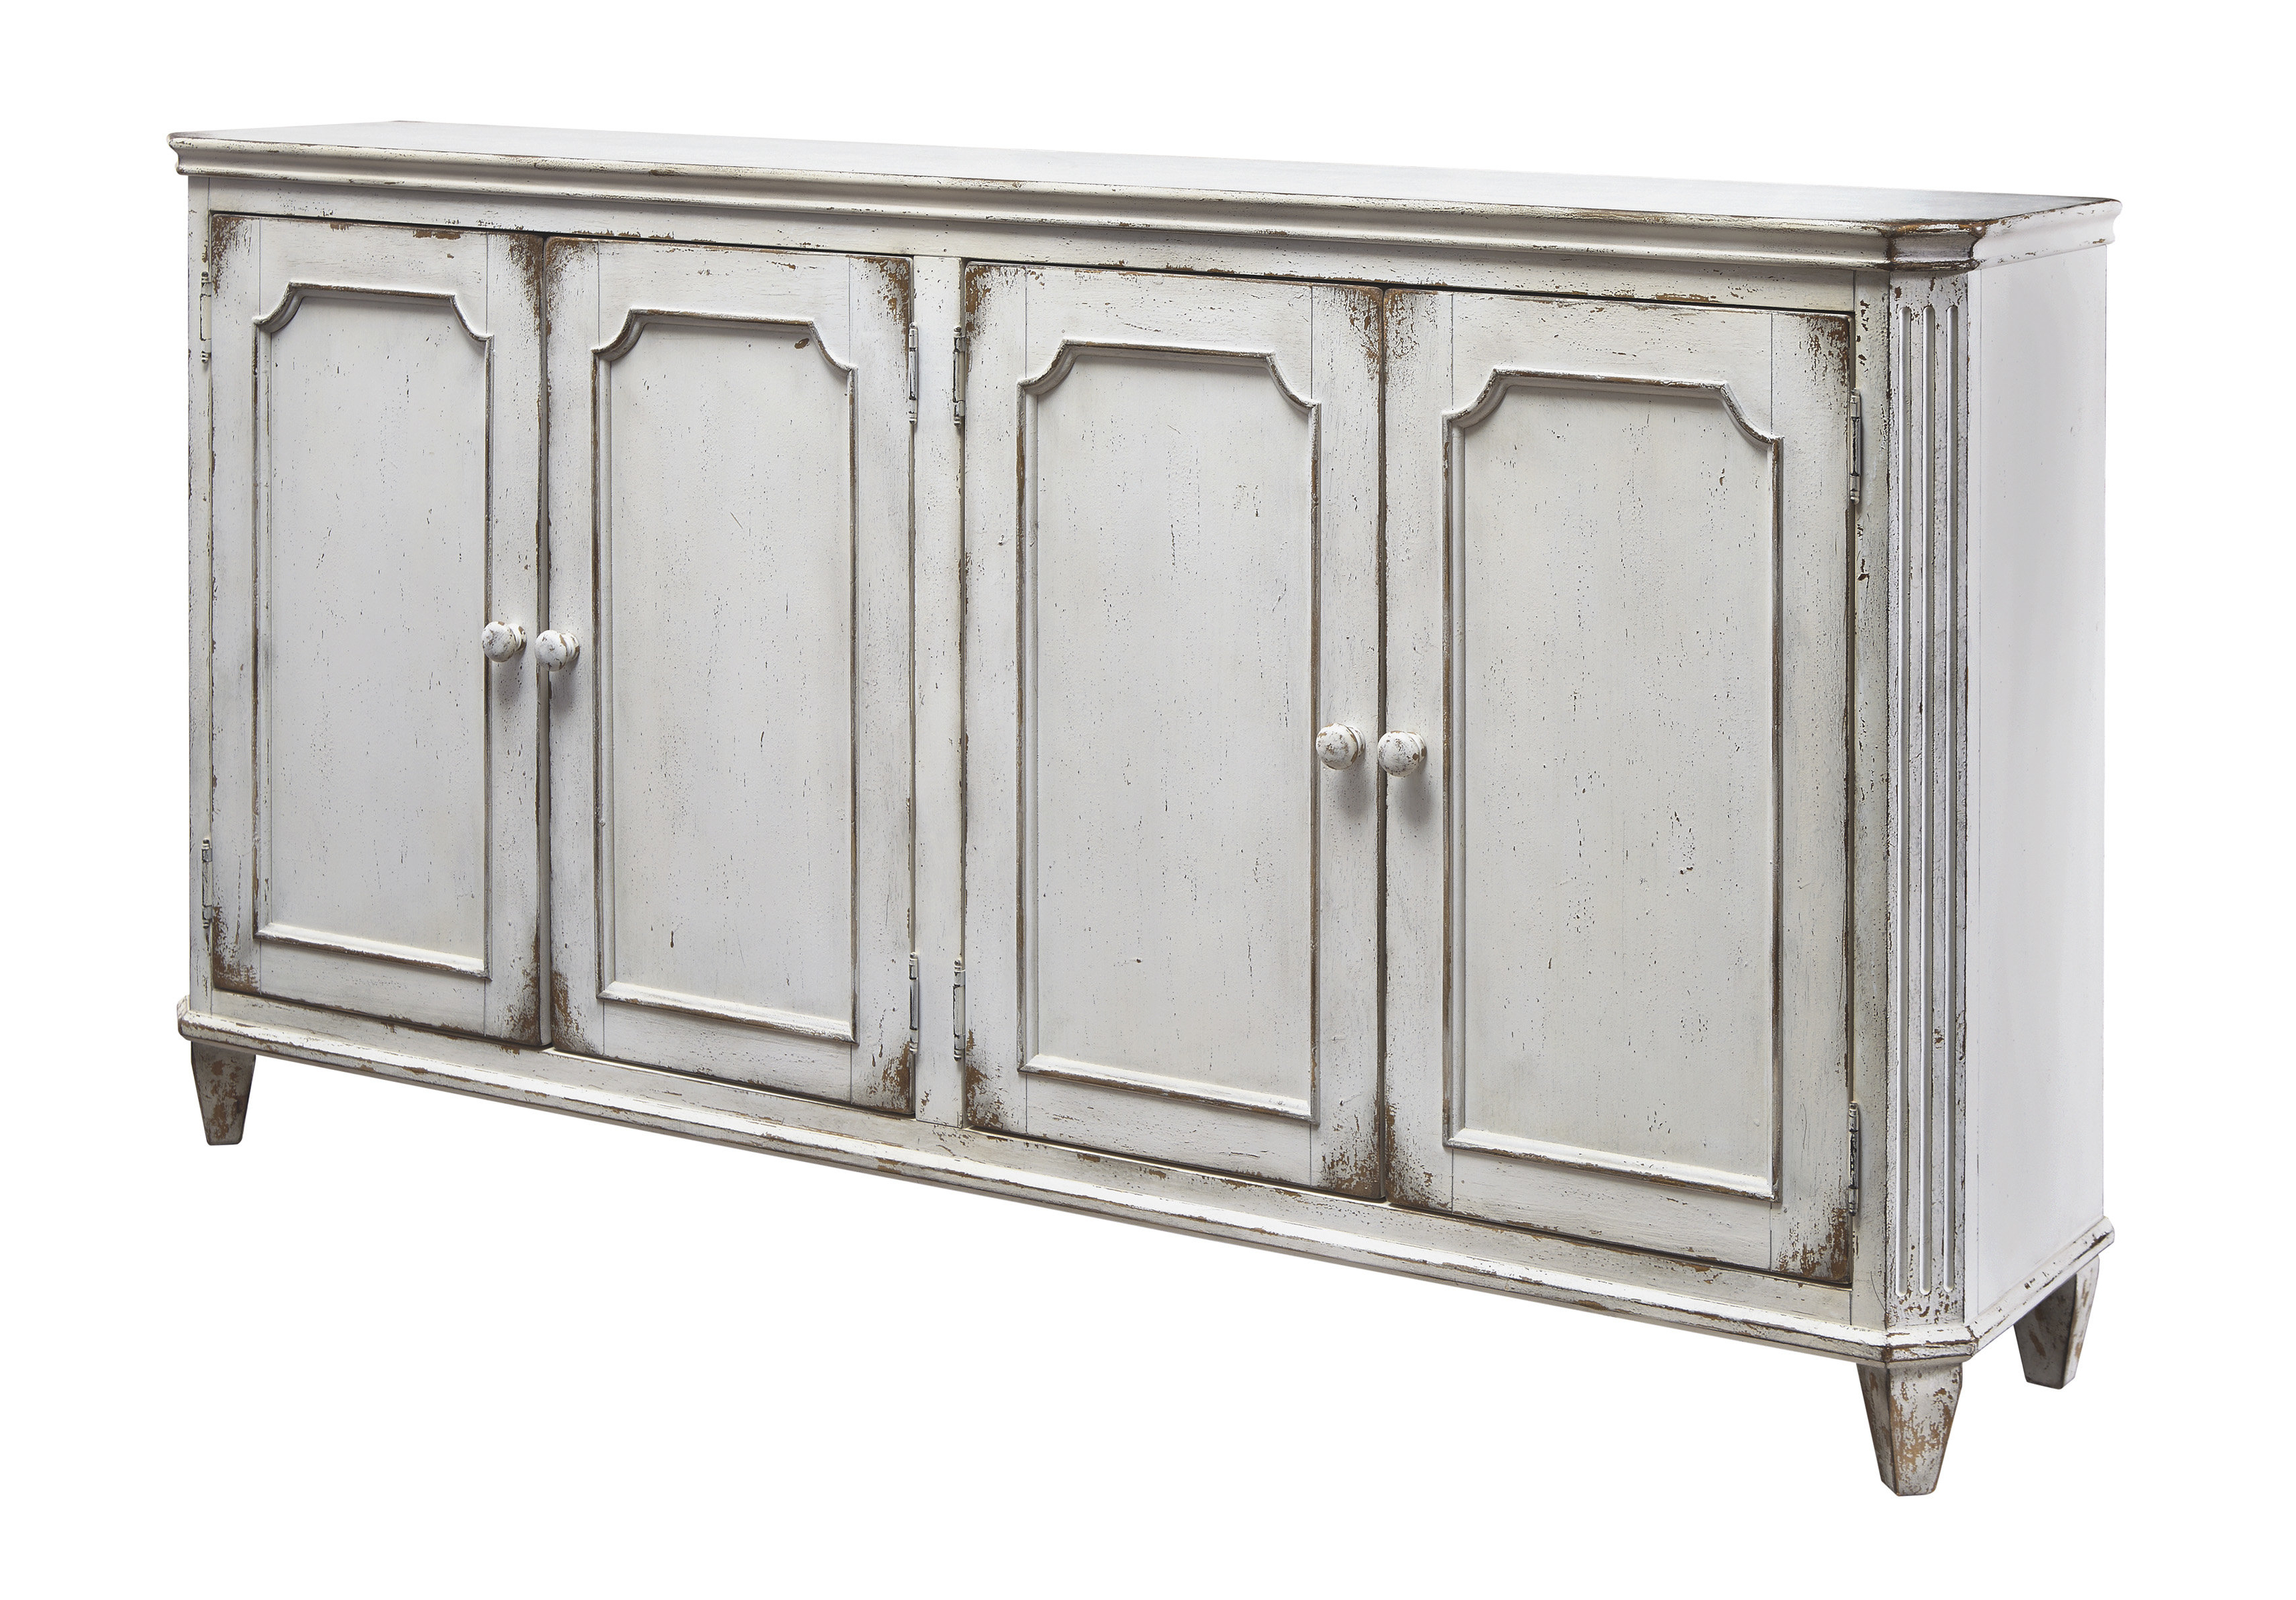 Deville Russelle Sideboards Throughout 2020 Nilles 4 Door Accent Cabinet & Reviews (Gallery 19 of 20)